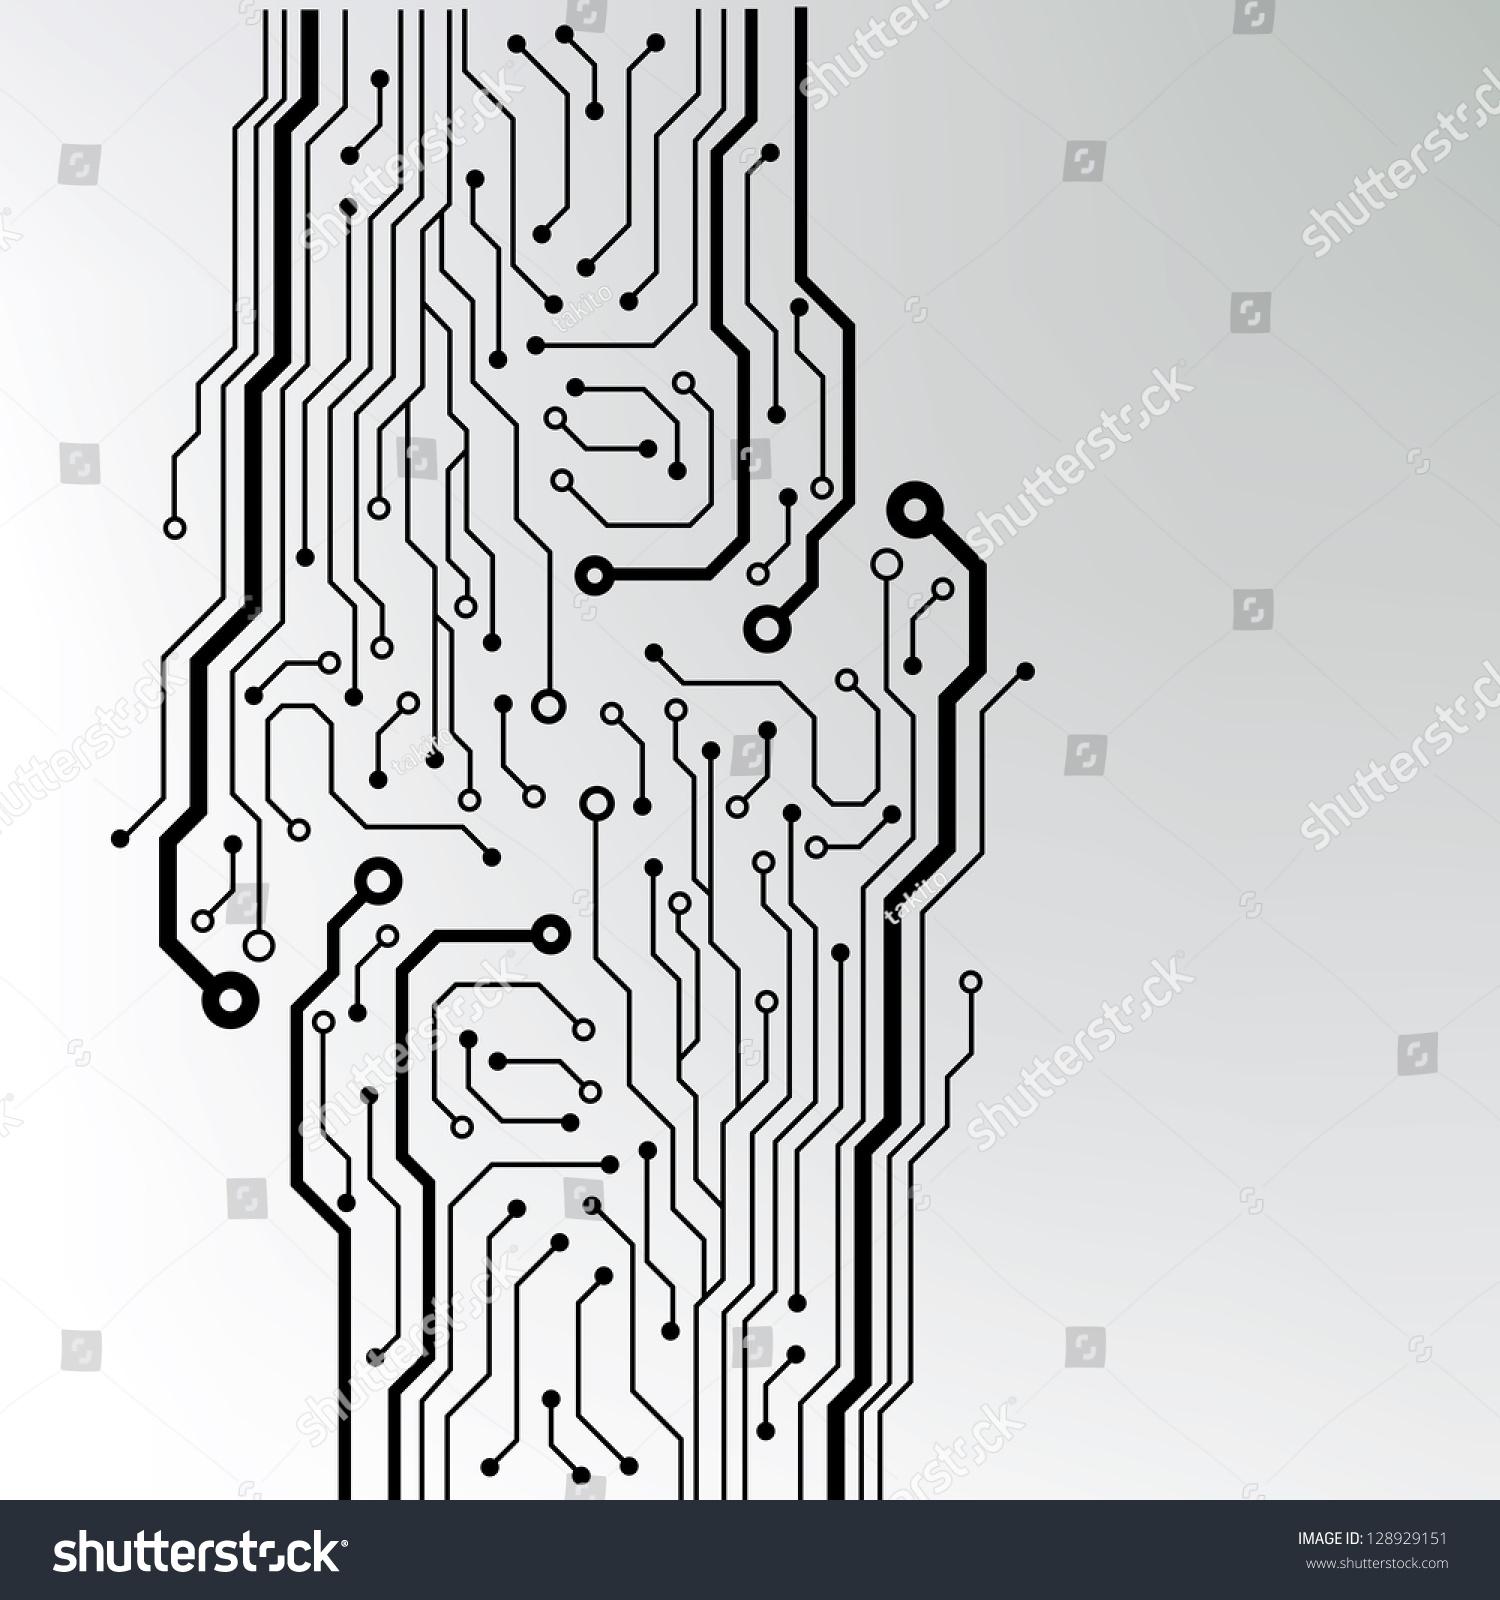 Abstract Technology Circuit Board Vector Background Stock Vector HD ...